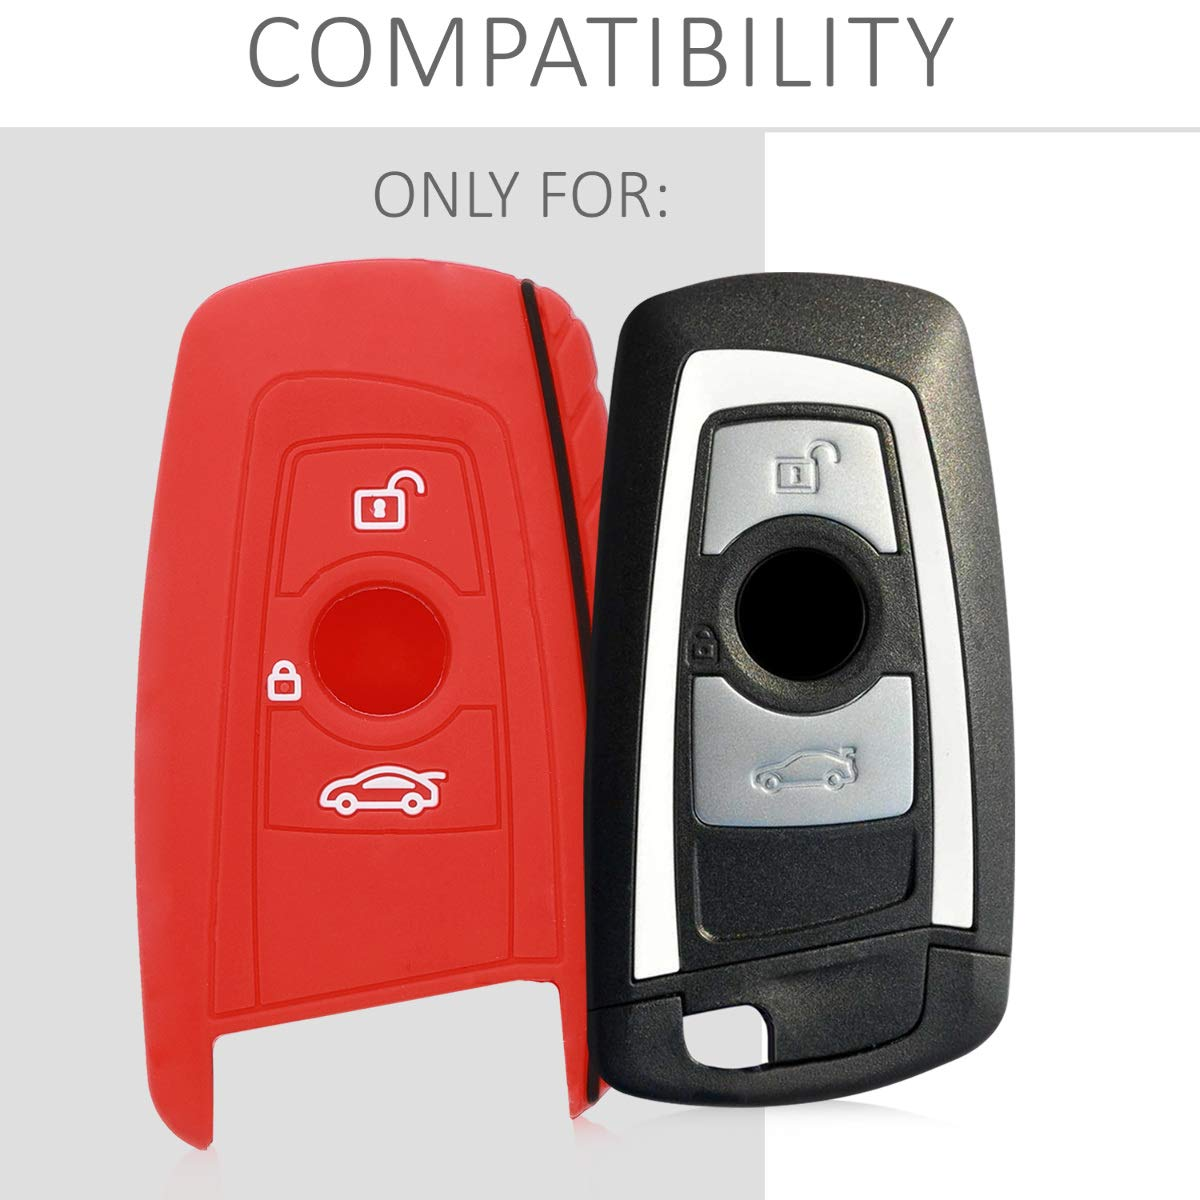 - White//Black//Red only Keyless Go kwmobile Car Key Cover for BMW Silicone Protective Key Fob Cover for BMW 3 Button Remote Control Car Key